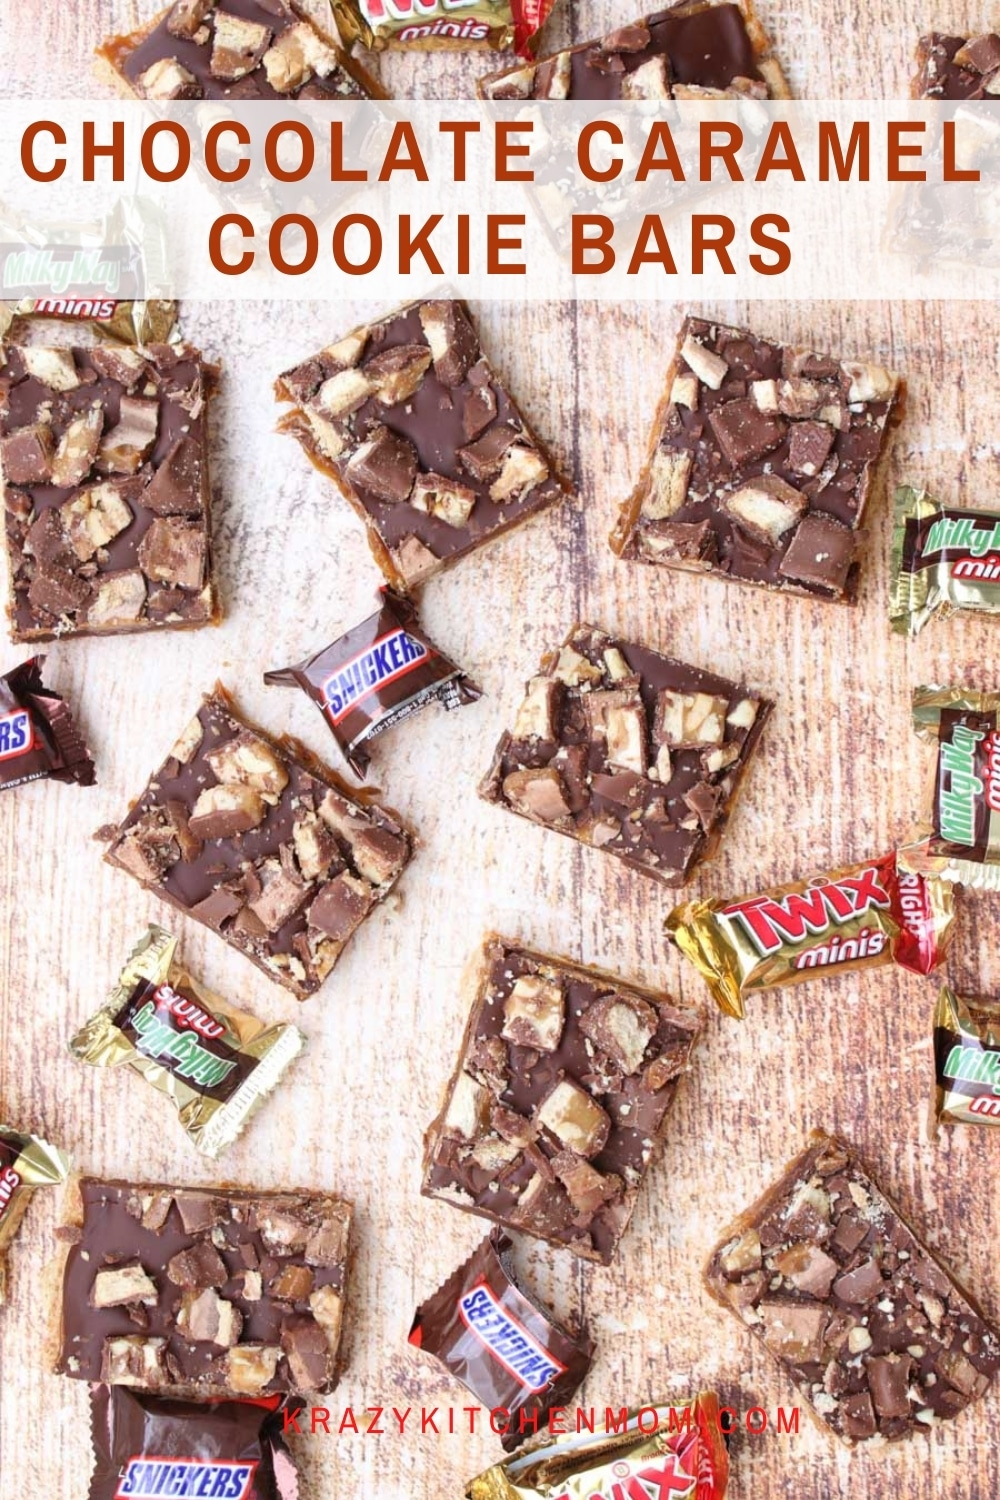 Ooey gooey, creamy, chocolatey cookie bars are my favorite no-bake, easy recipe for all my sweet tooth chocolate lovers. Made with graham crackers, caramel, chocolate chips, and assorted candy bars. via @krazykitchenmom